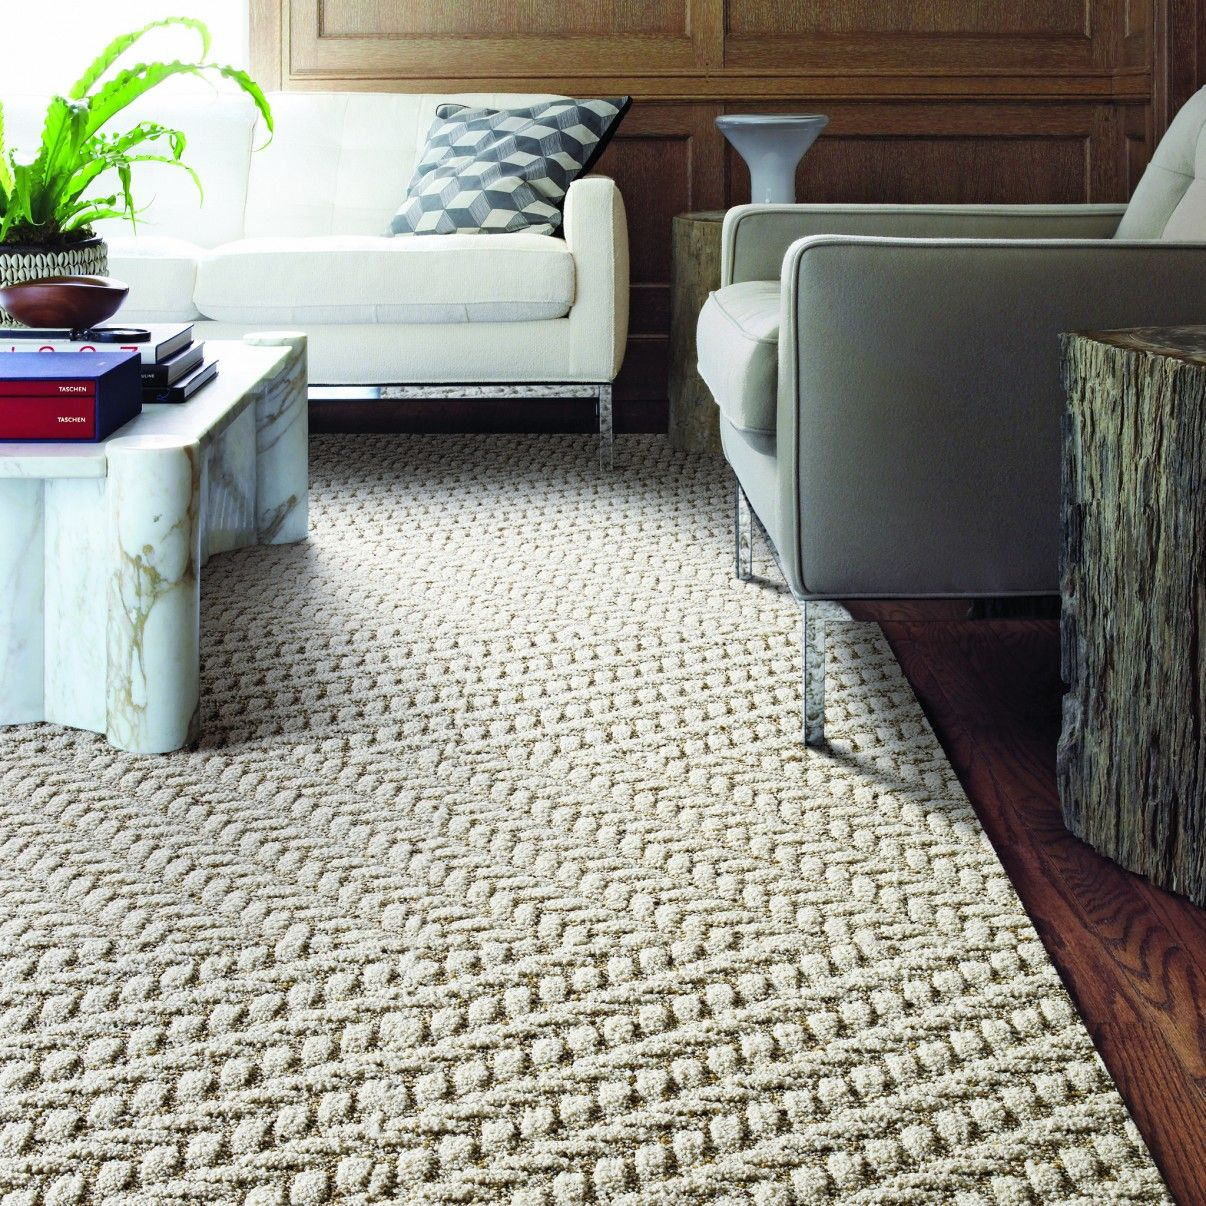 Flor Carpet Tiles Create Sustainable Living With Style My Favorite Rug Is